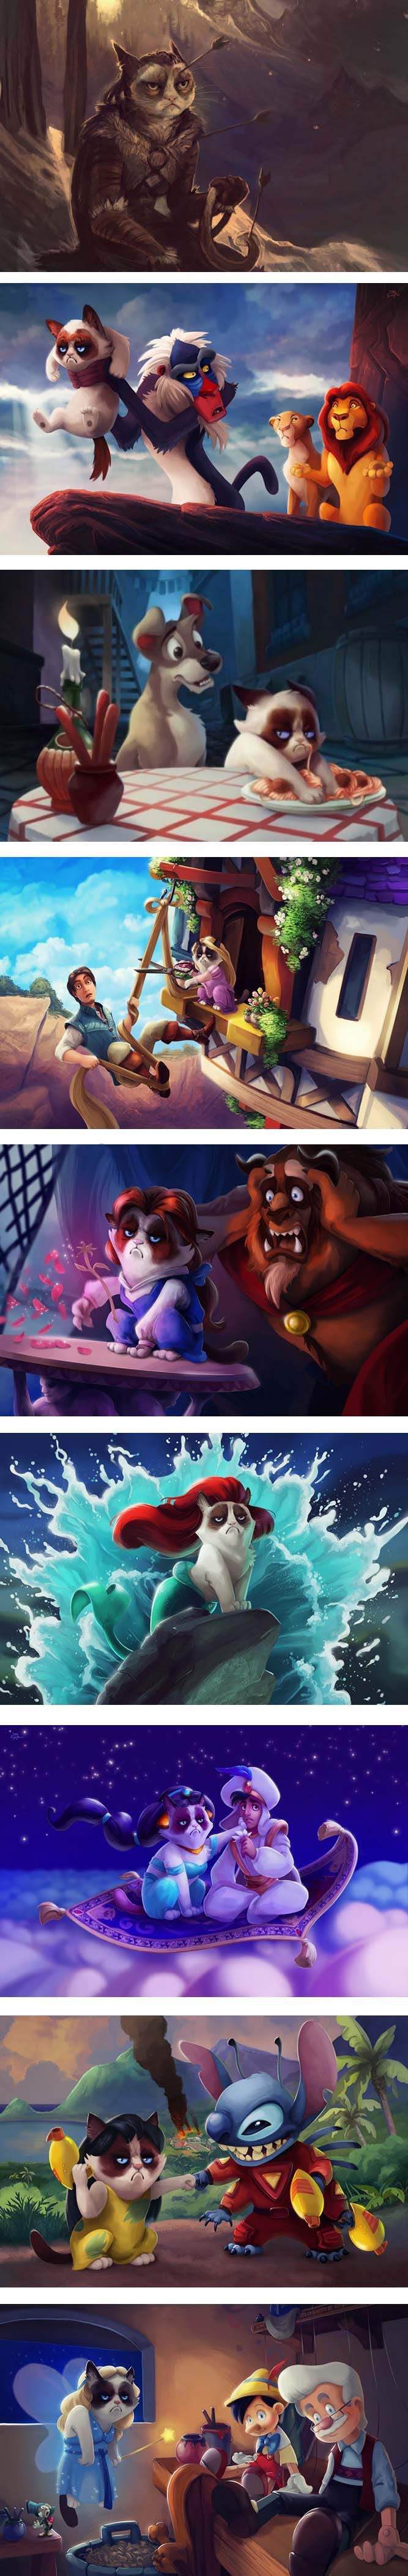 Grumpy Cat Adventures!